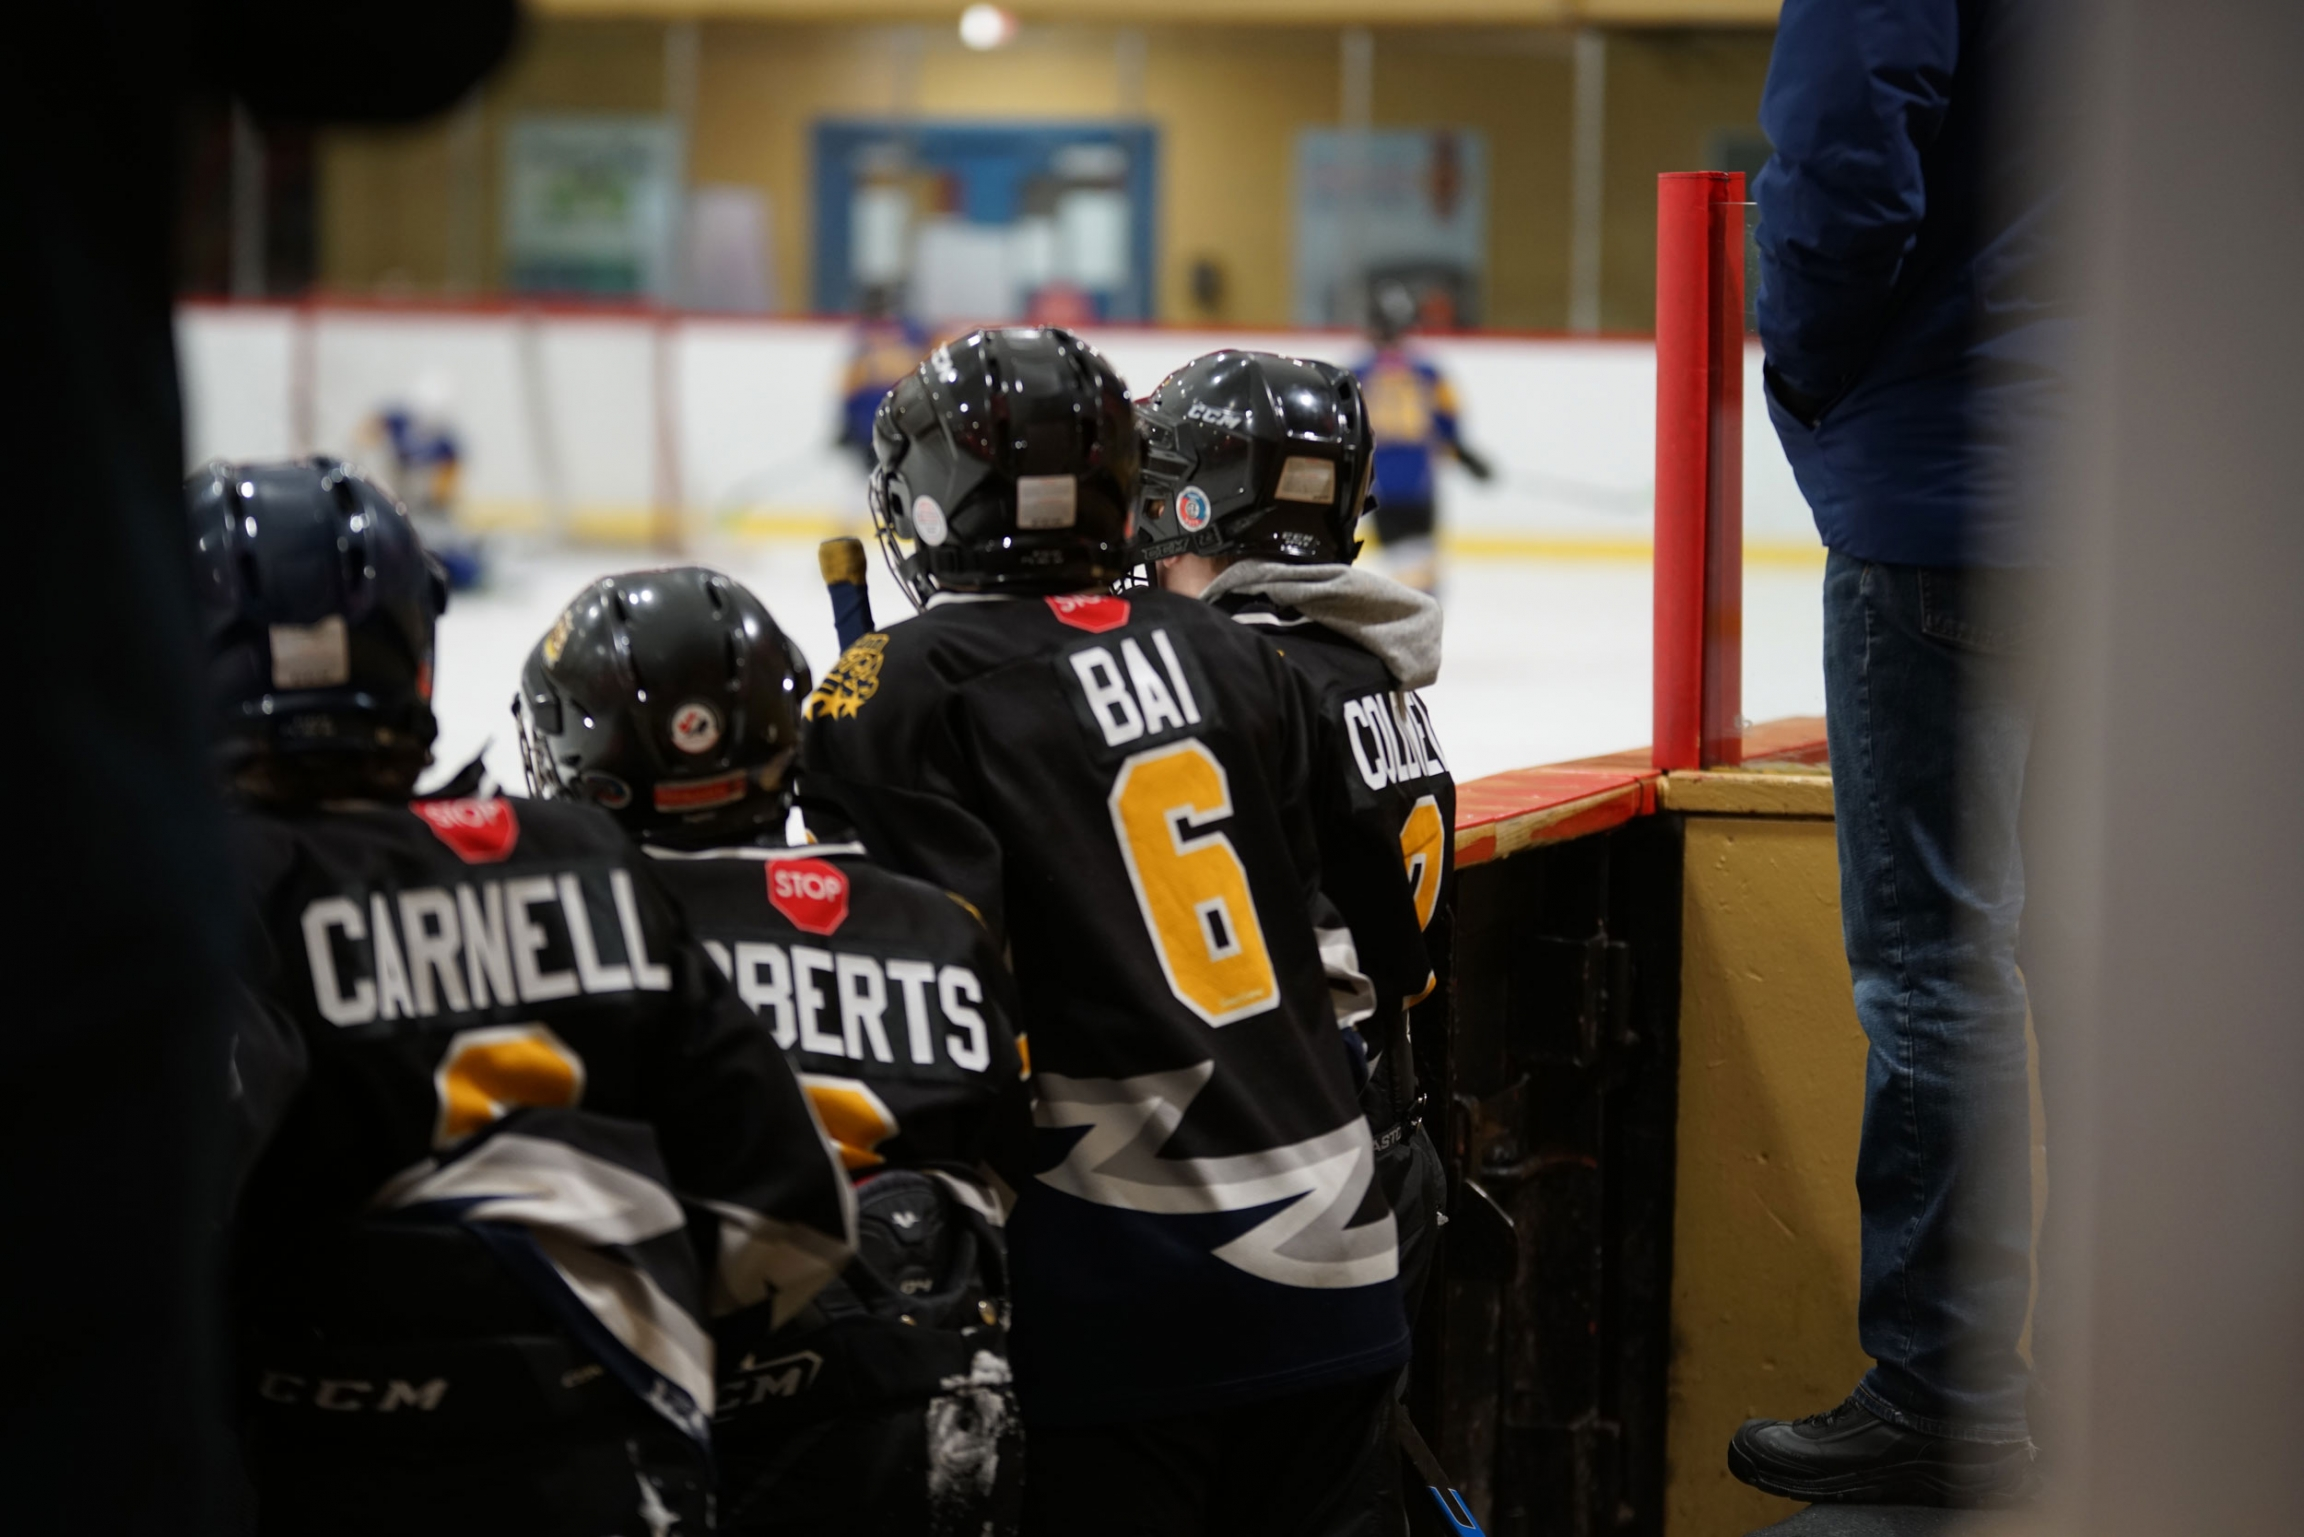 Yamen saysthe best part of hockey is his team.